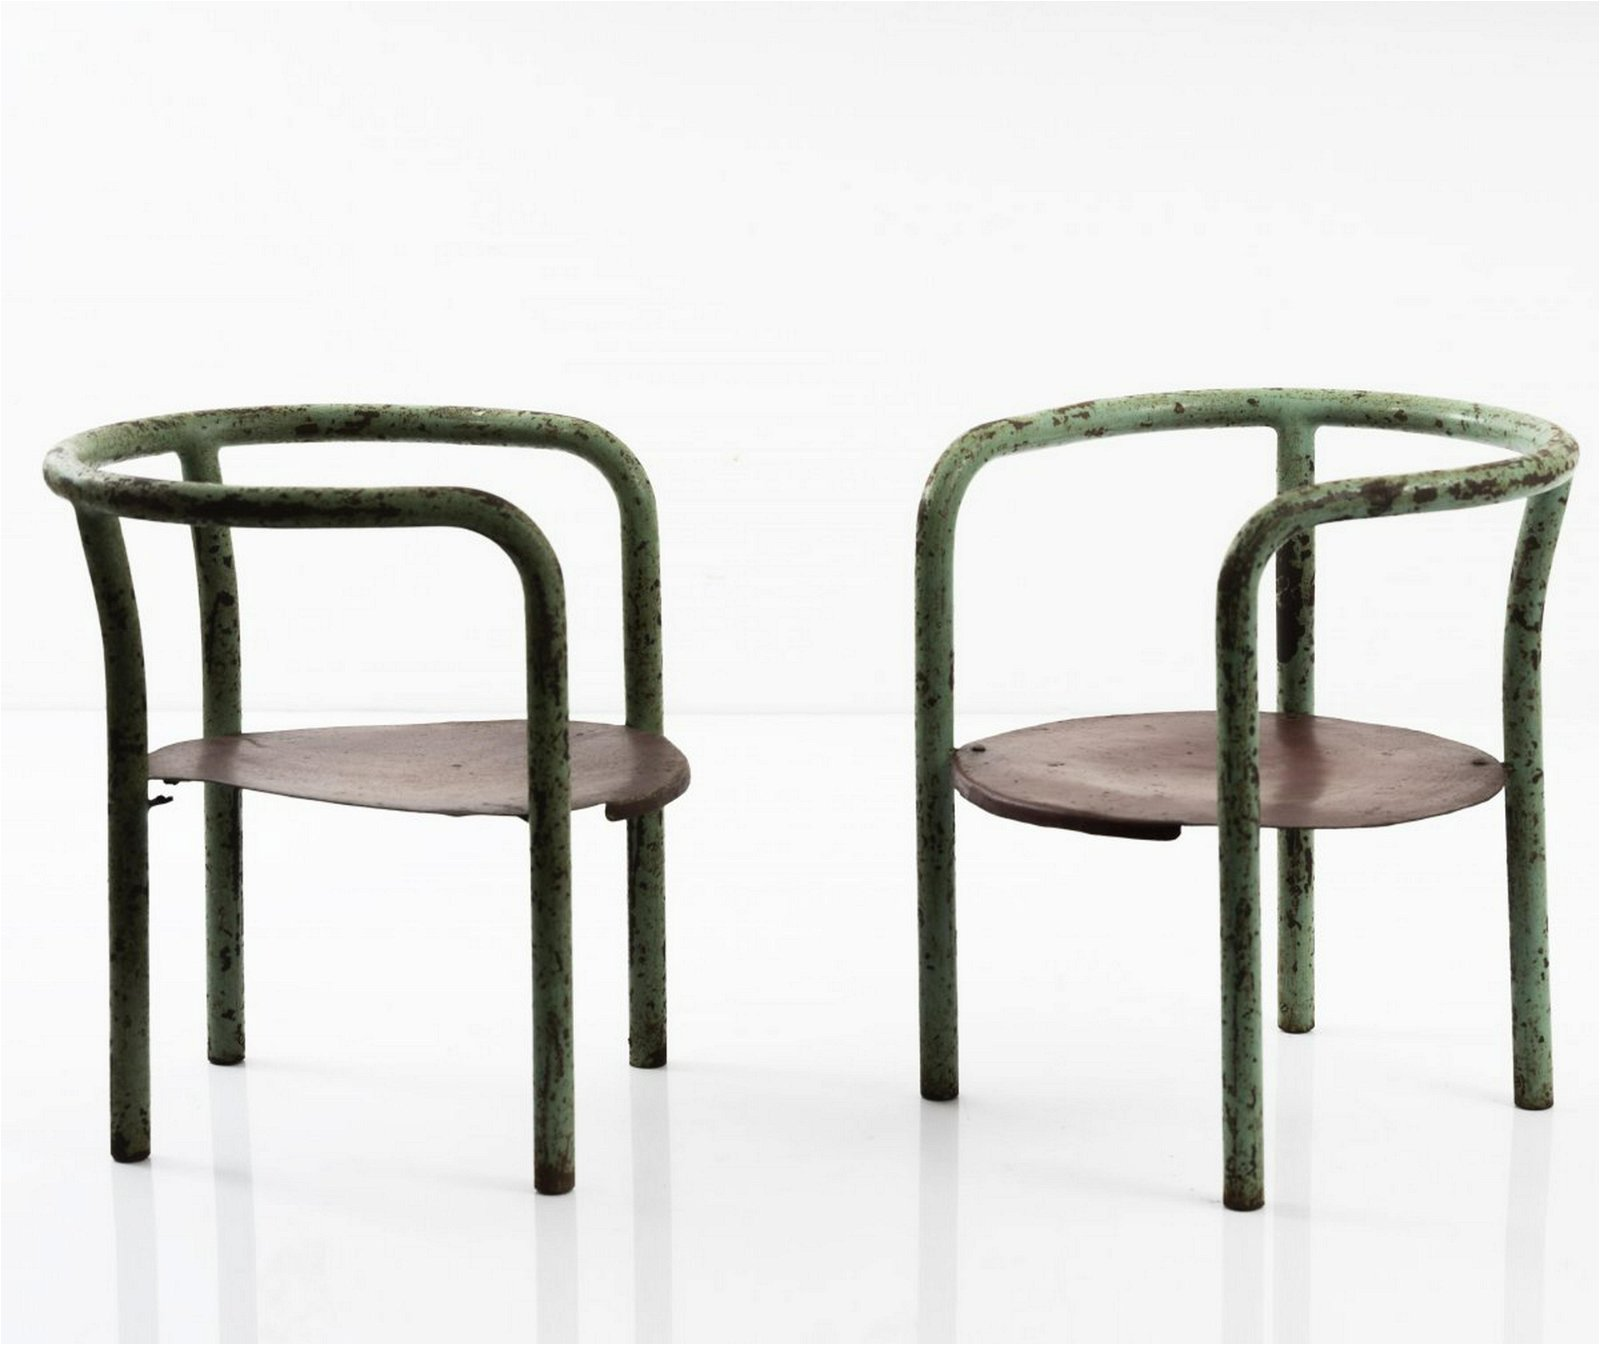 Italy, Two child's chairs, 1930s